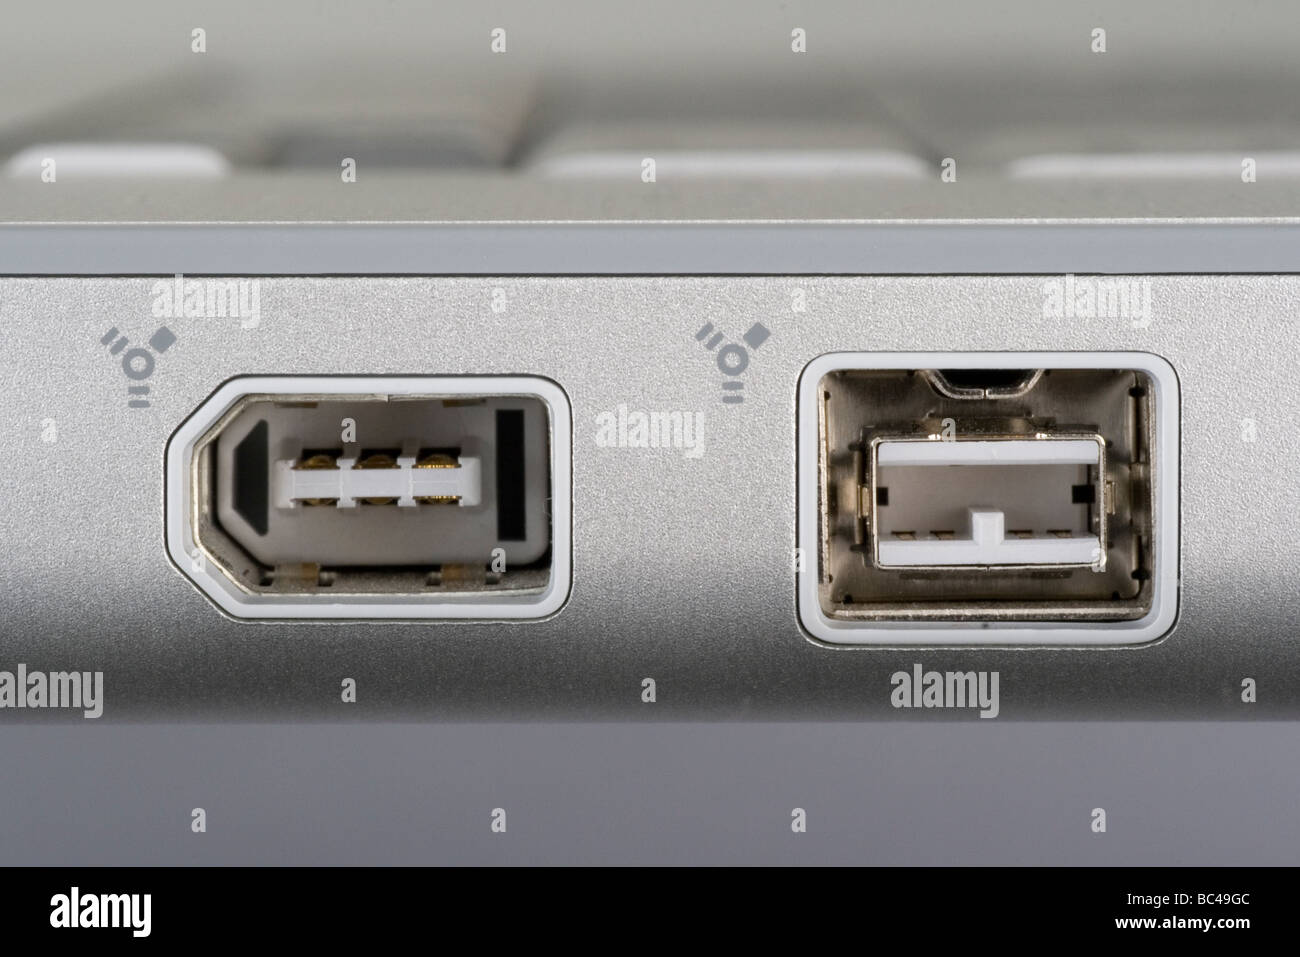 Fantastic Firewire 800 Port Image Illustration - Electrical and ...